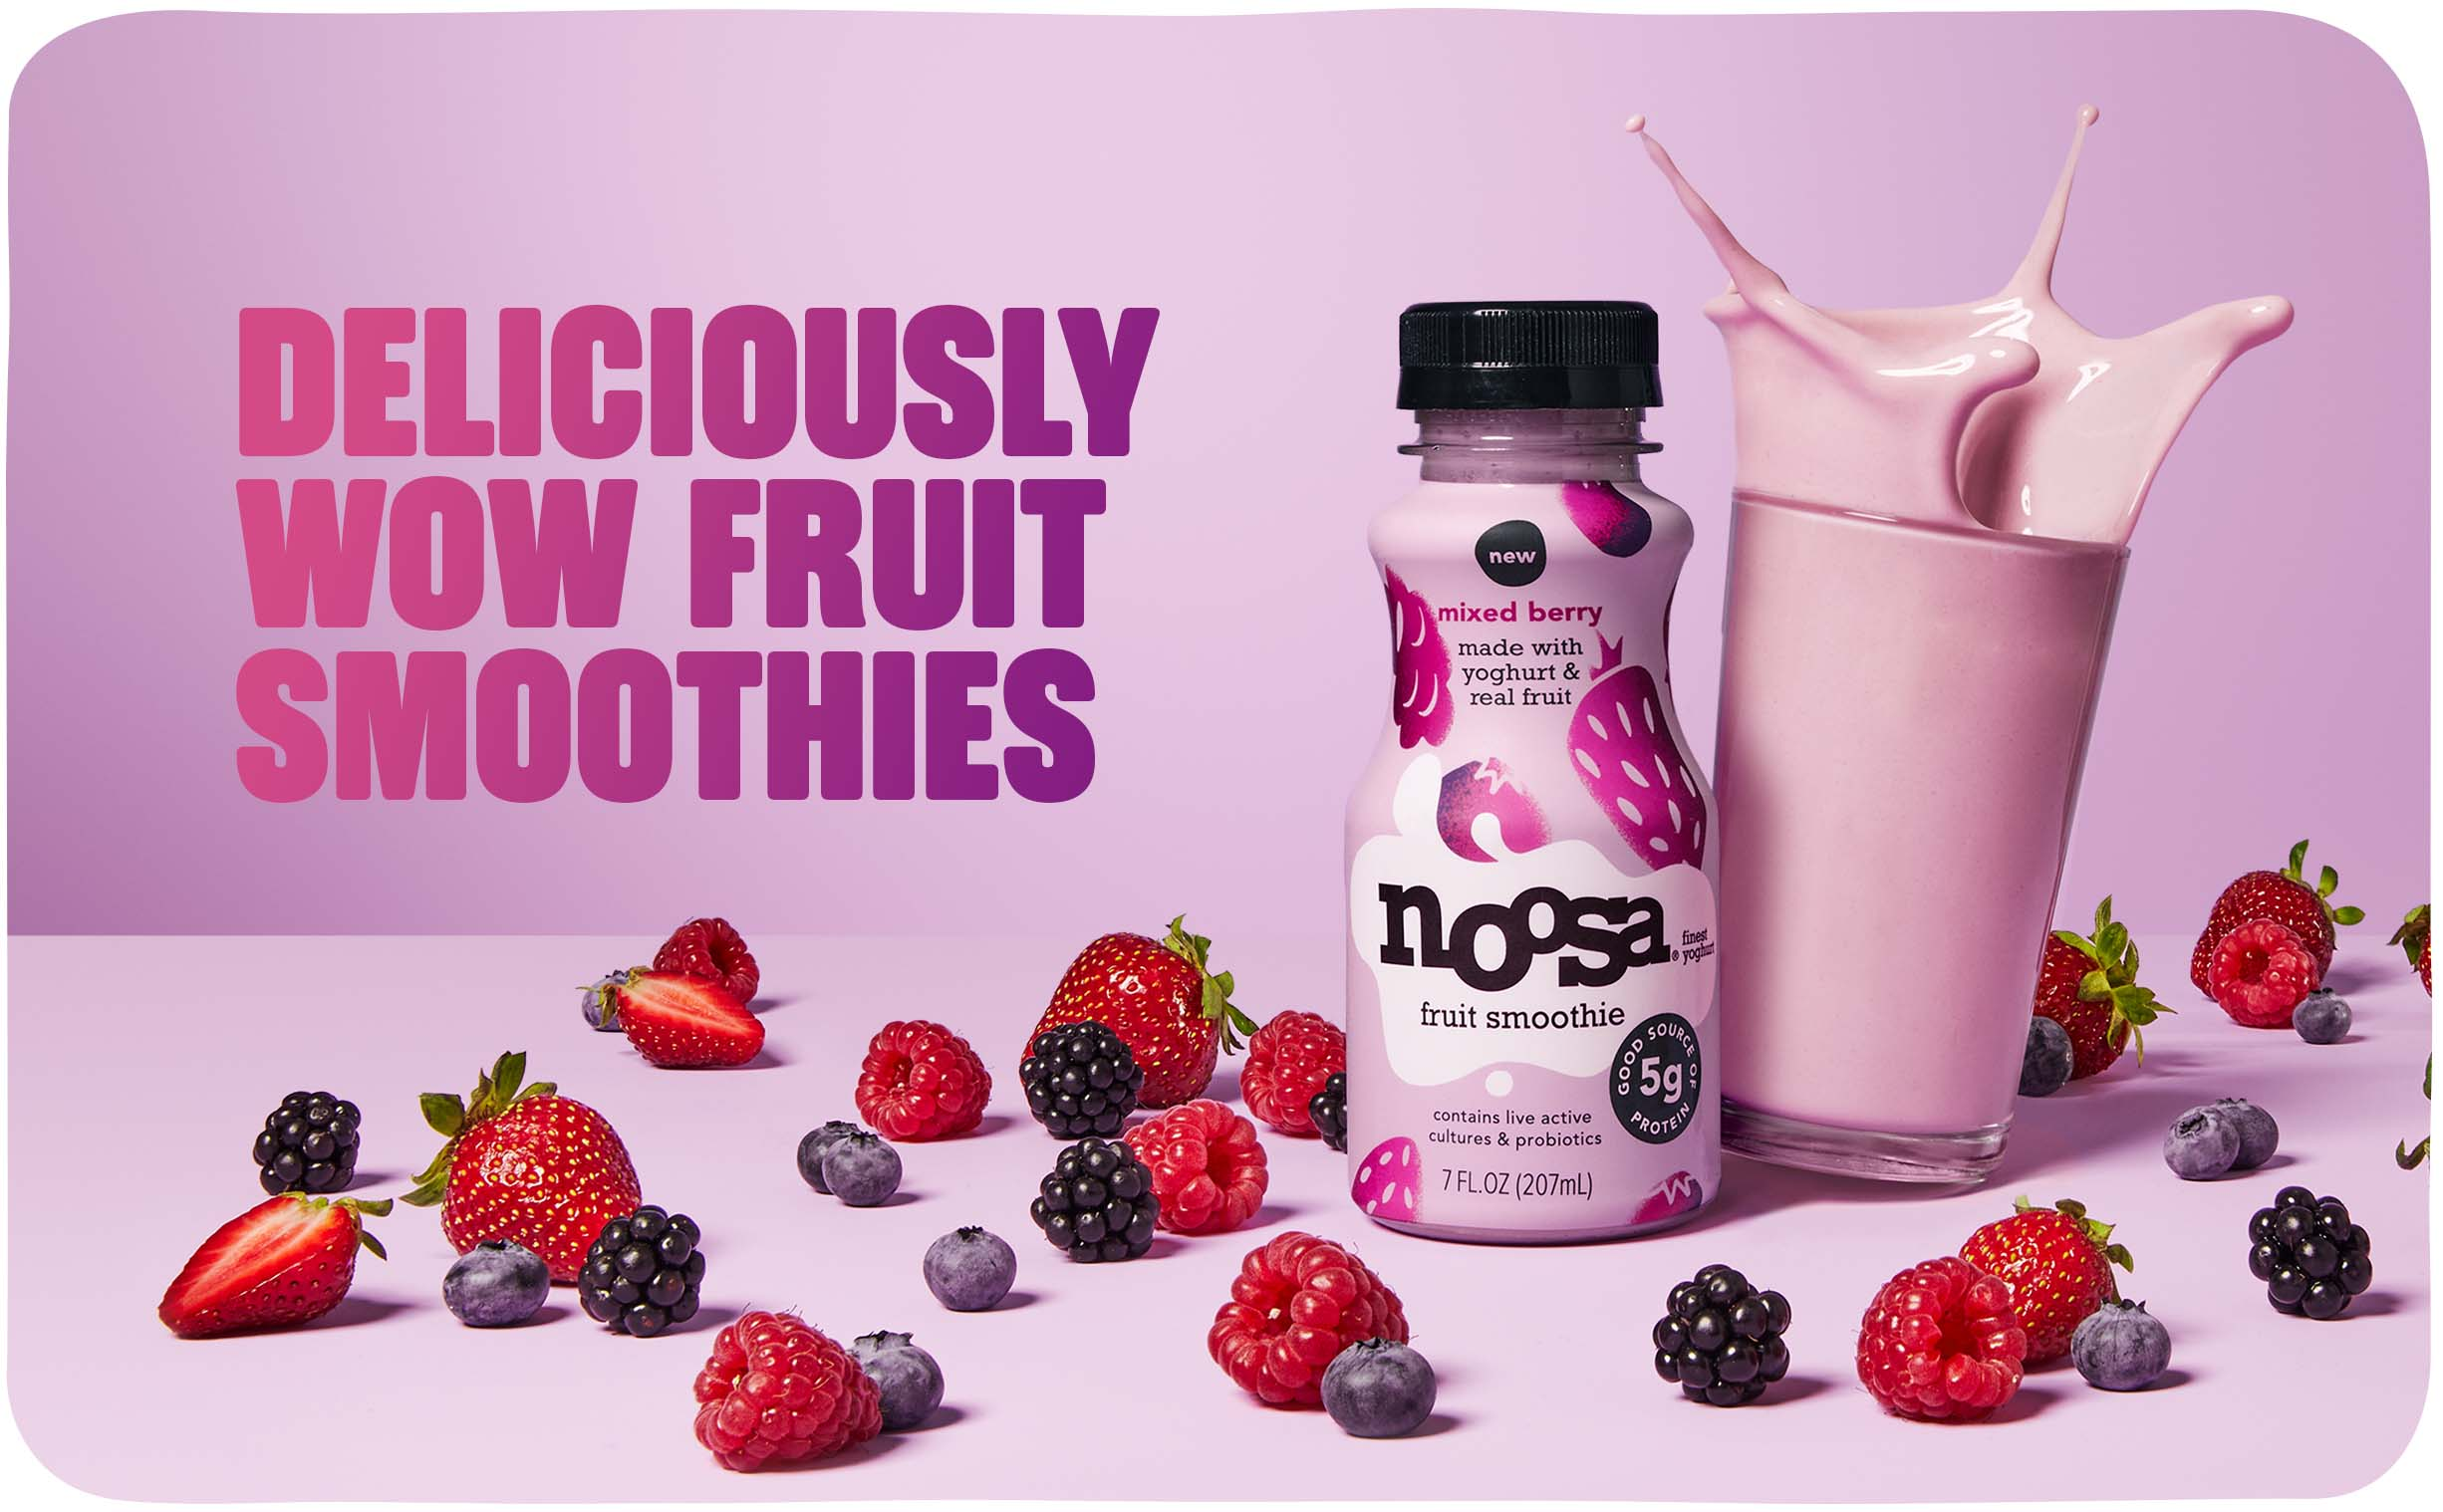 Deliciously Wow Fruit Smoothies